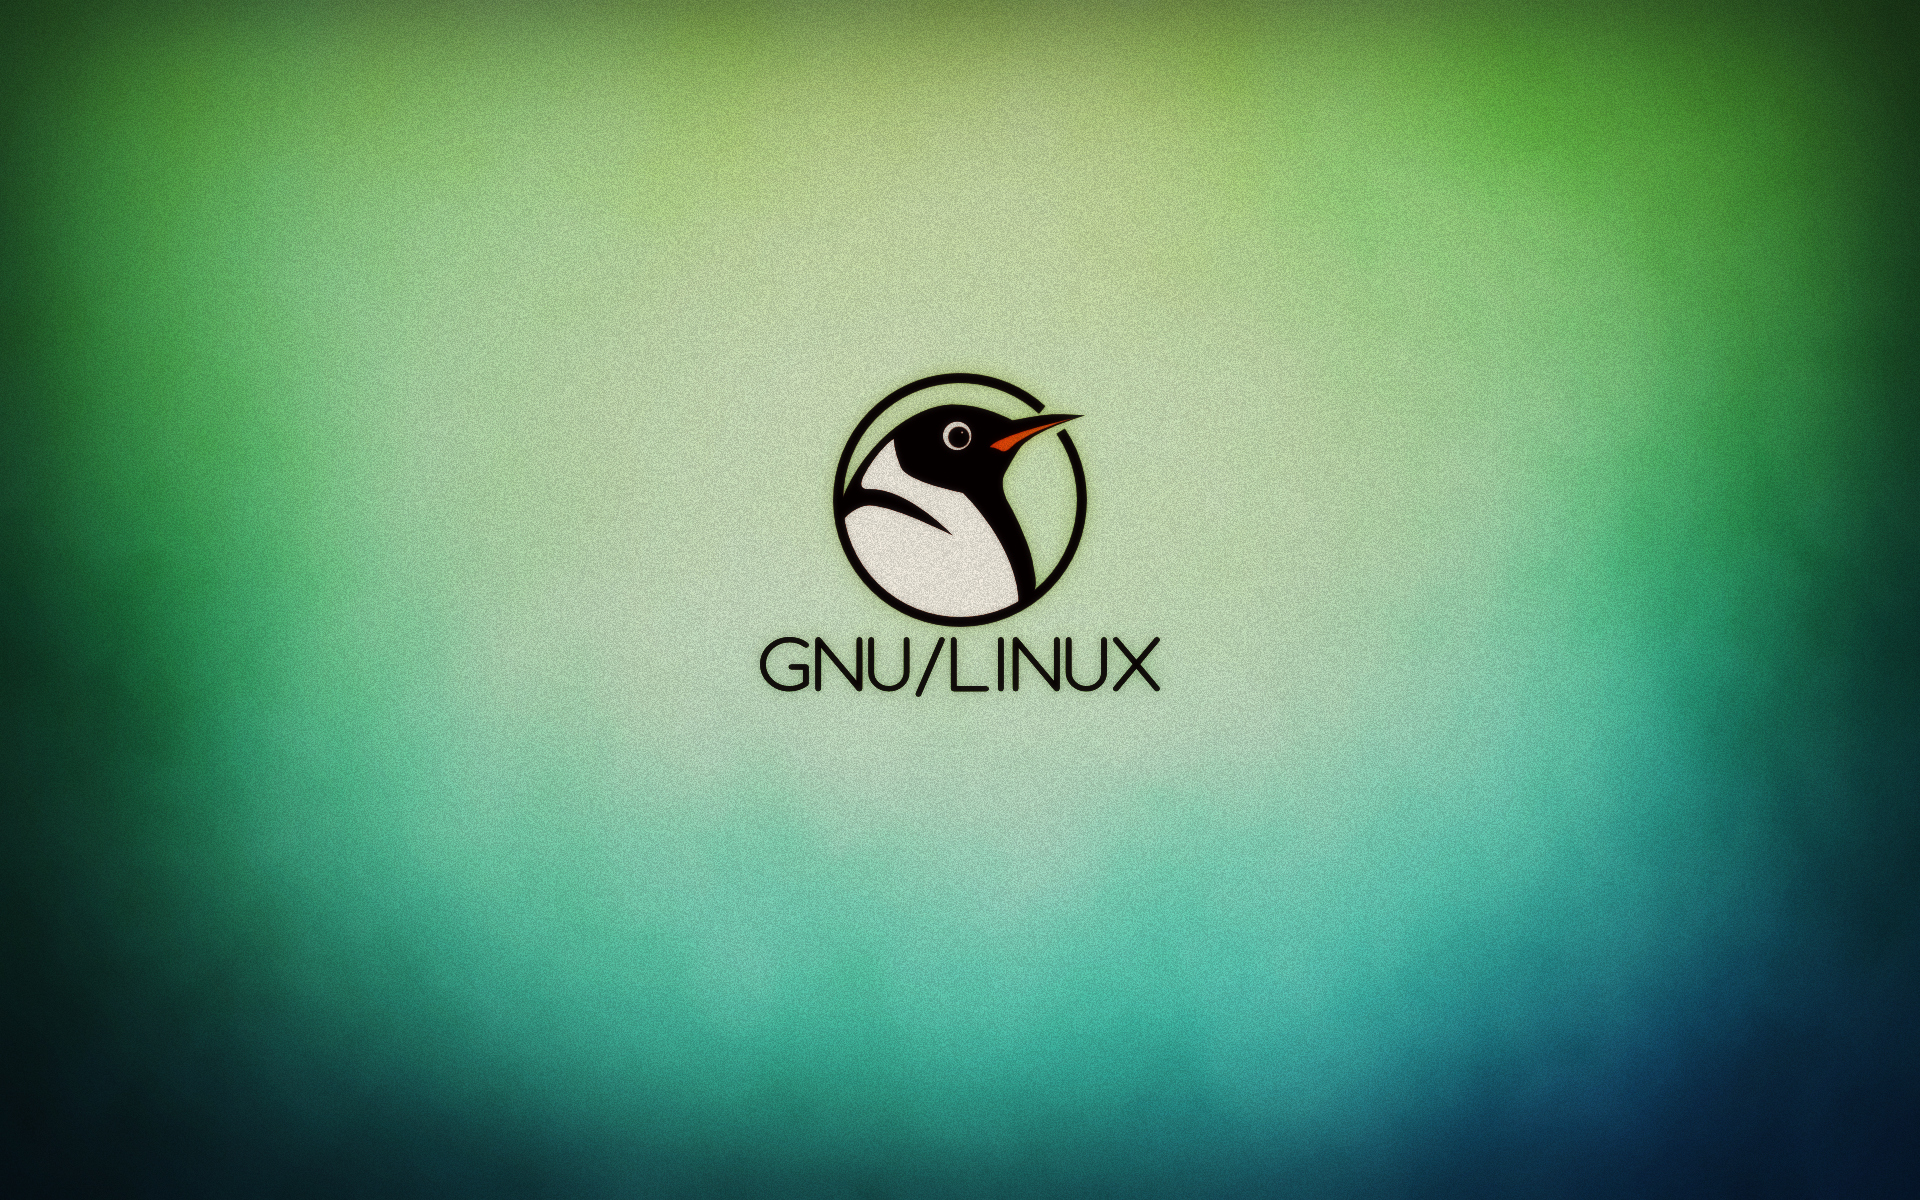 Linux Wallpaper (download)